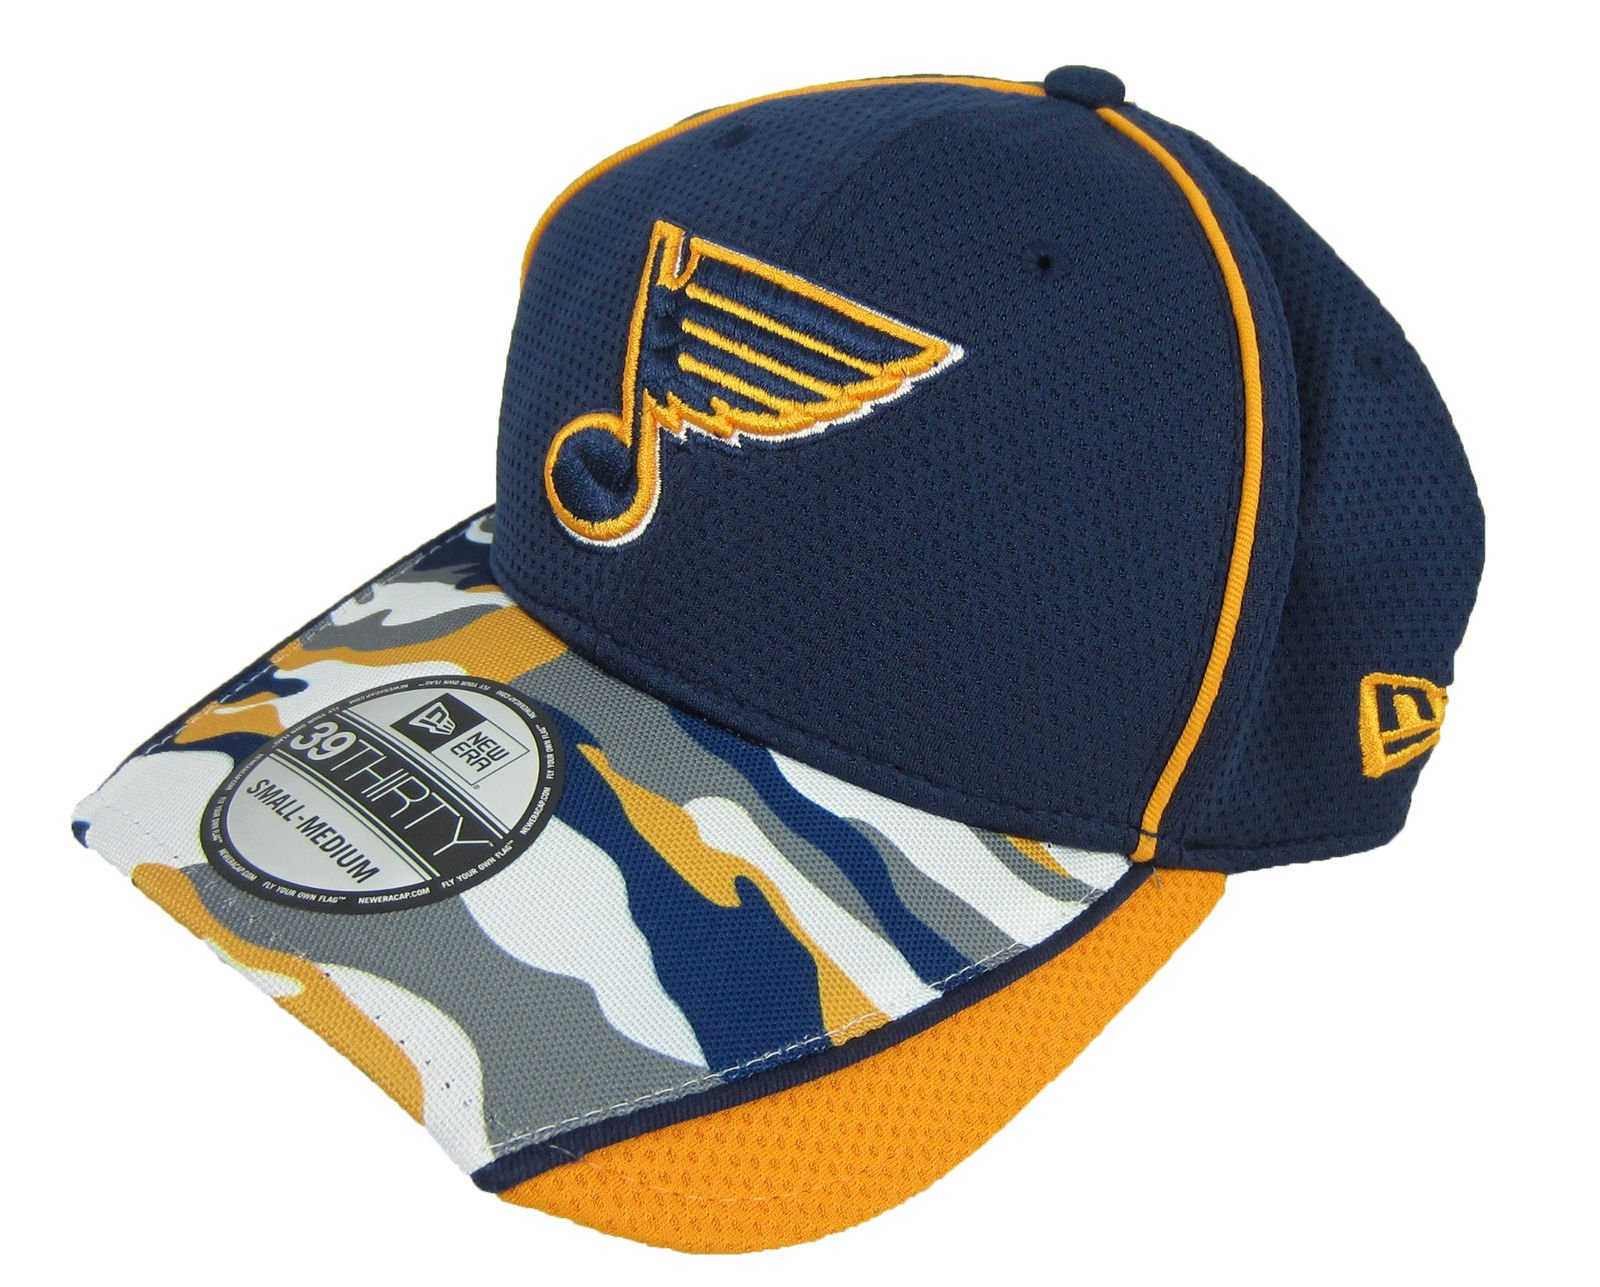 2159daa70f3 Details about New Era NHL Hockey 39Thirty St. Louis Blues Hat Fitted NWT